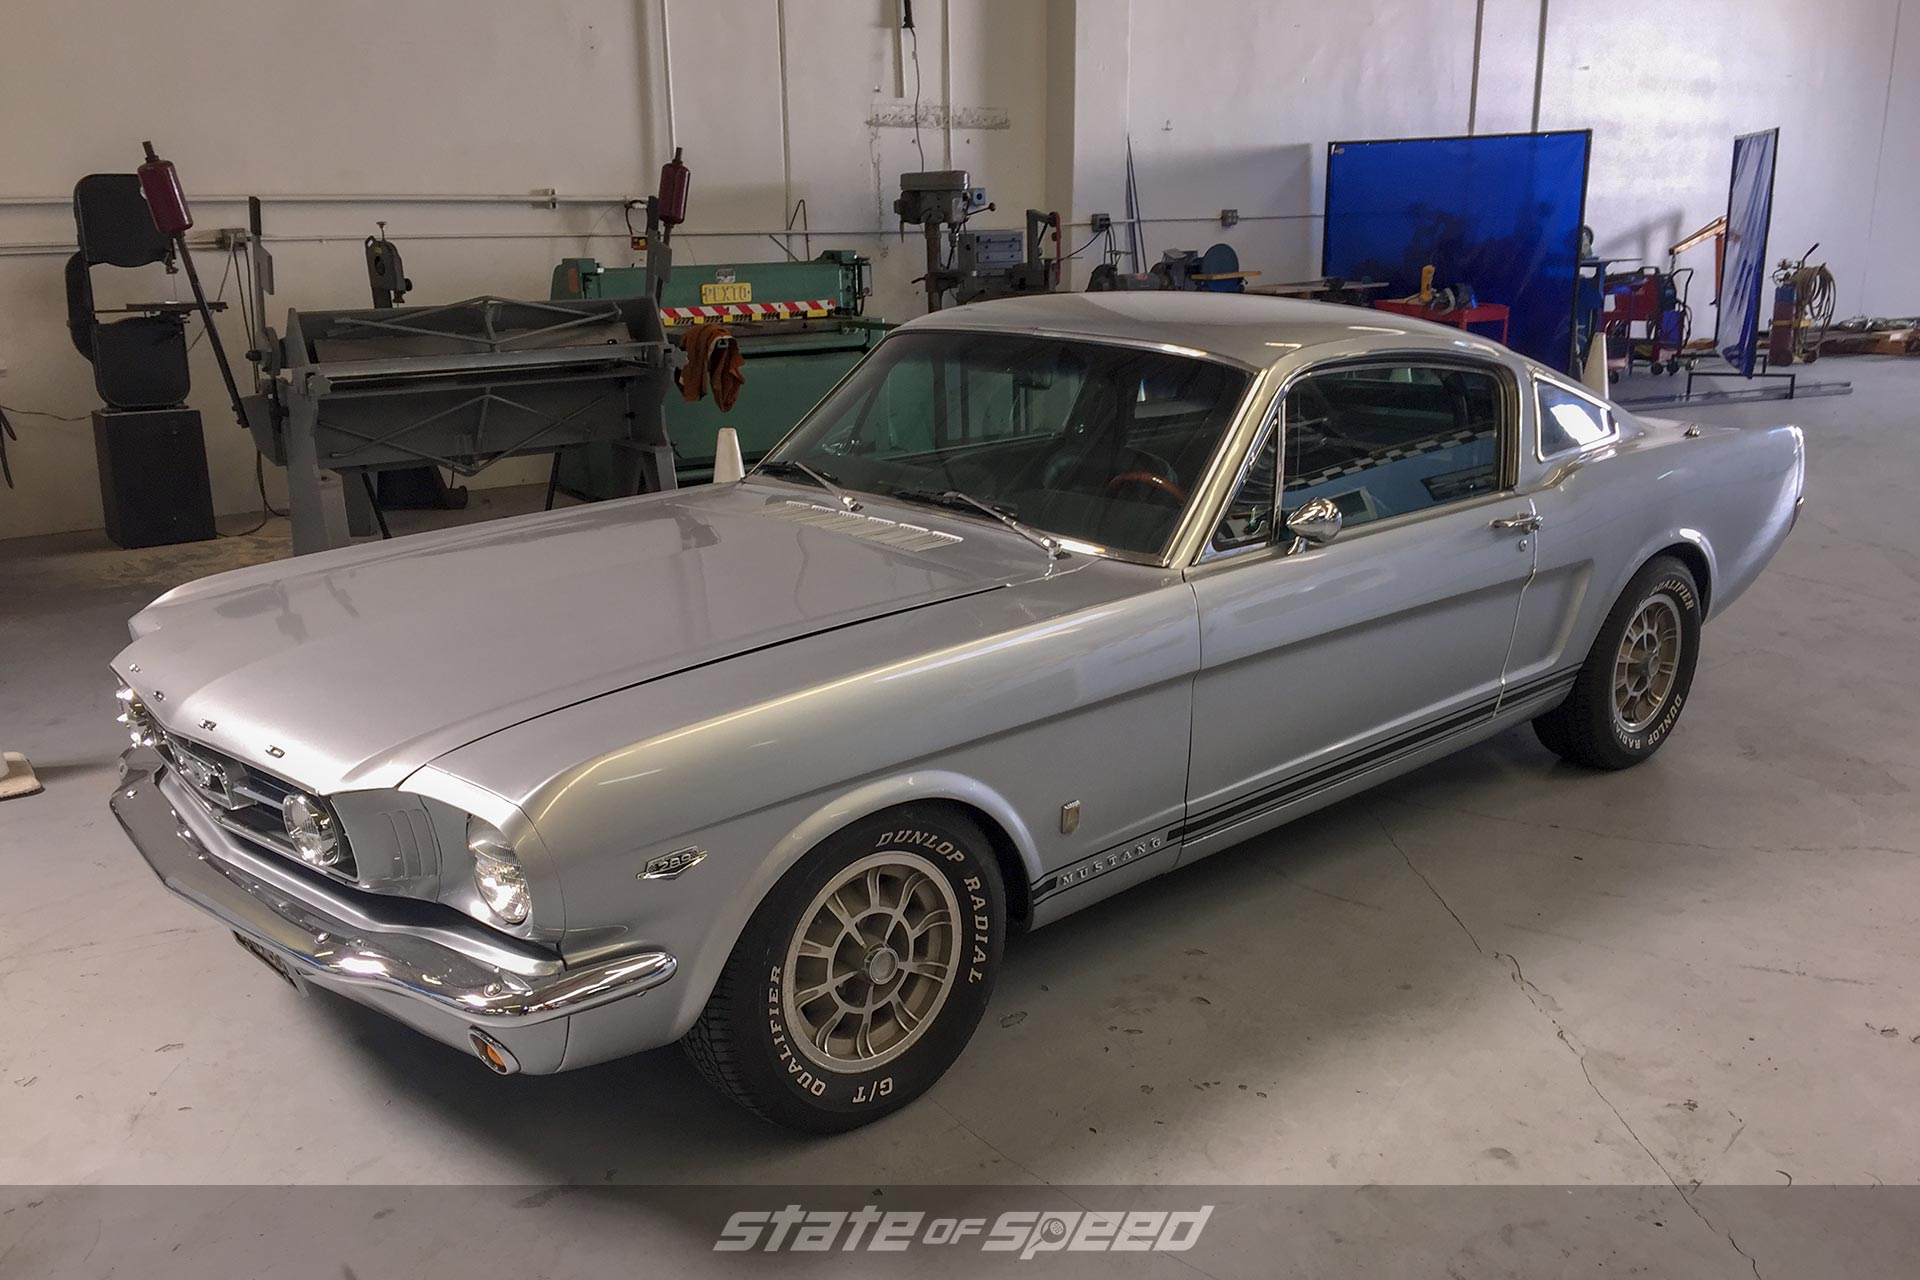 Silver Ford Mustang in the shop